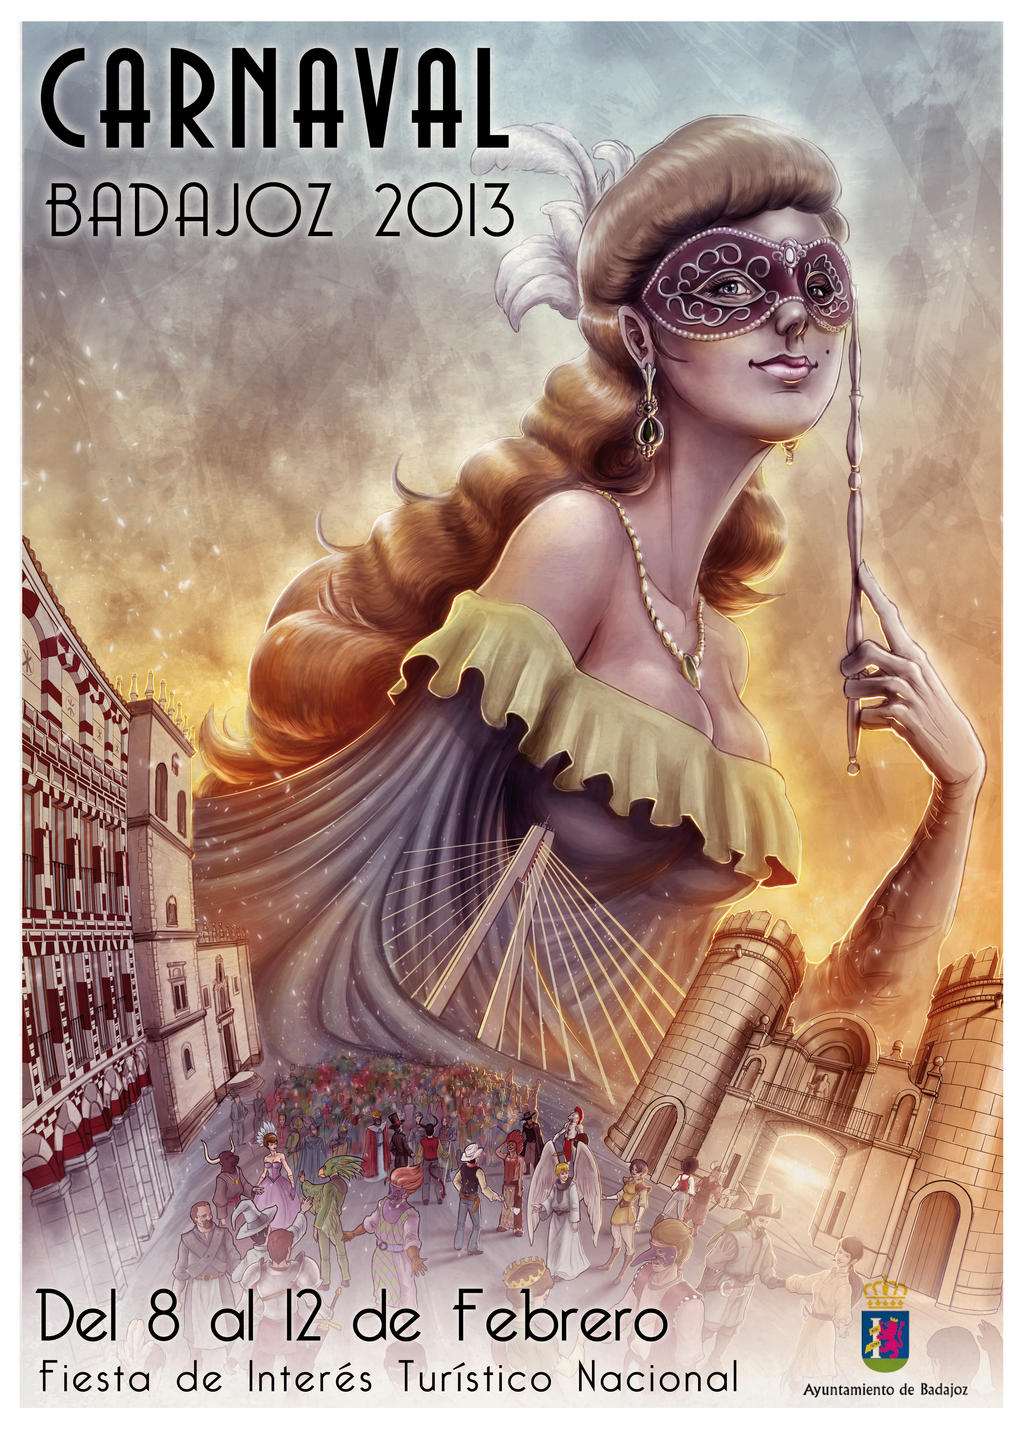 Carnaval poster contest by JoseManuelSerrano